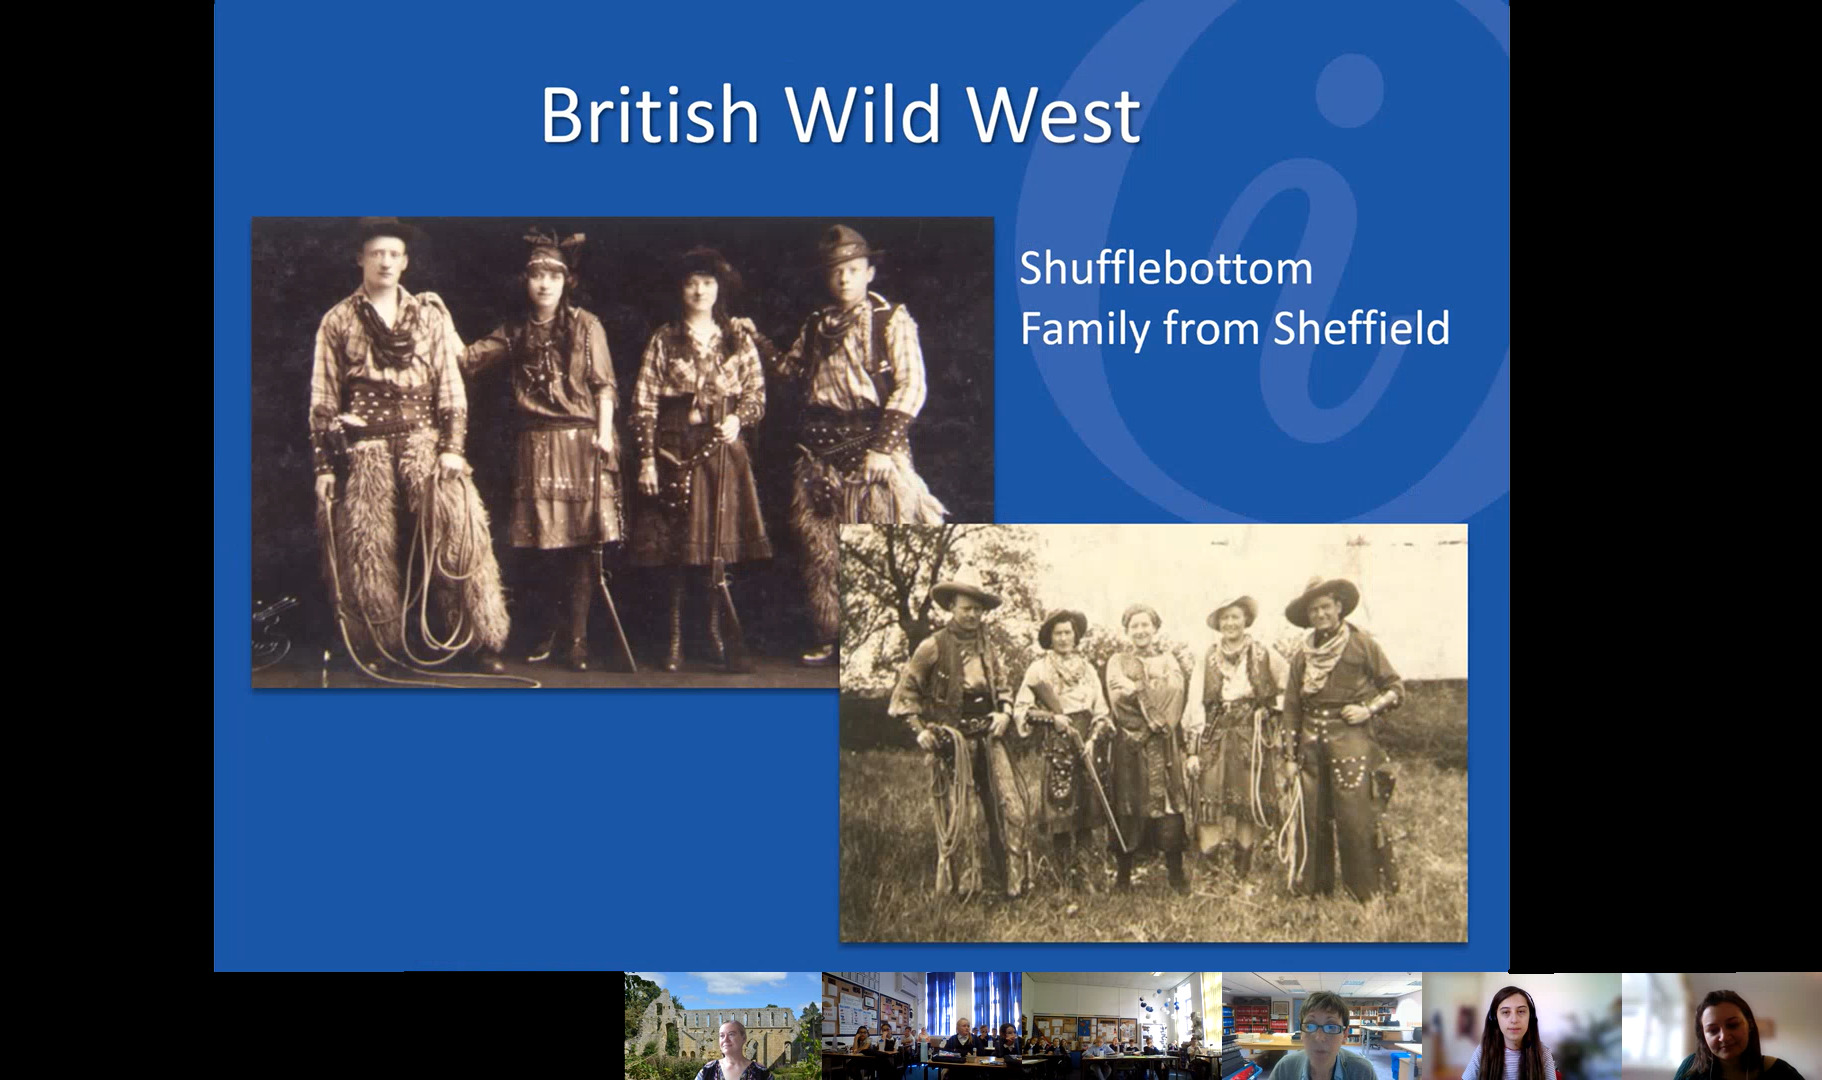 """Presentation slide """"British Wild West"""" showing the Shufflebottom Family from Sheffield in two photos. The photos show men and women dressed in Wild West clothing, with cowboy hats and studded leather, fur and ropes."""